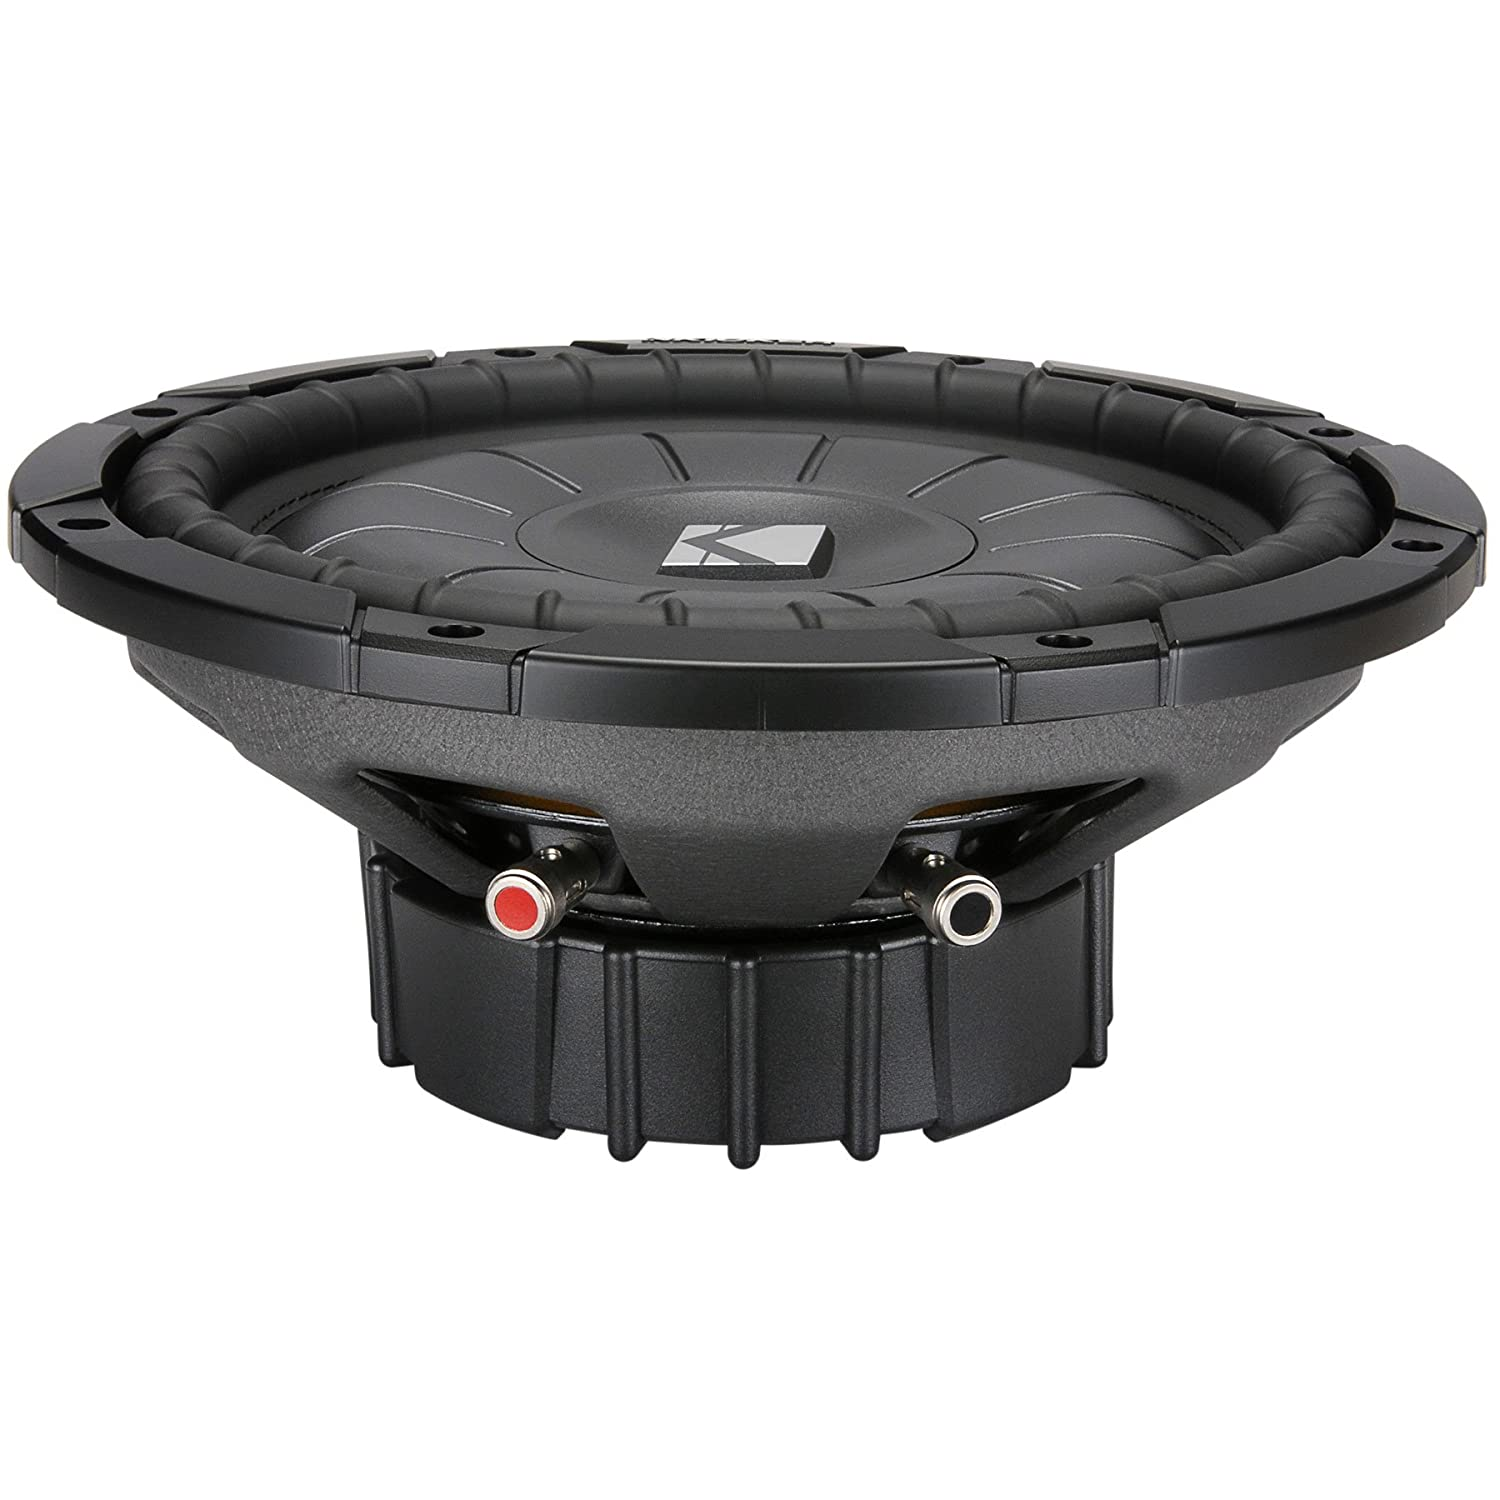 Amazon.com: Kicker 10CVT104 10-Inch CompVT Series Shallow Mount Subwoofer:  Cell Phones & Accessories